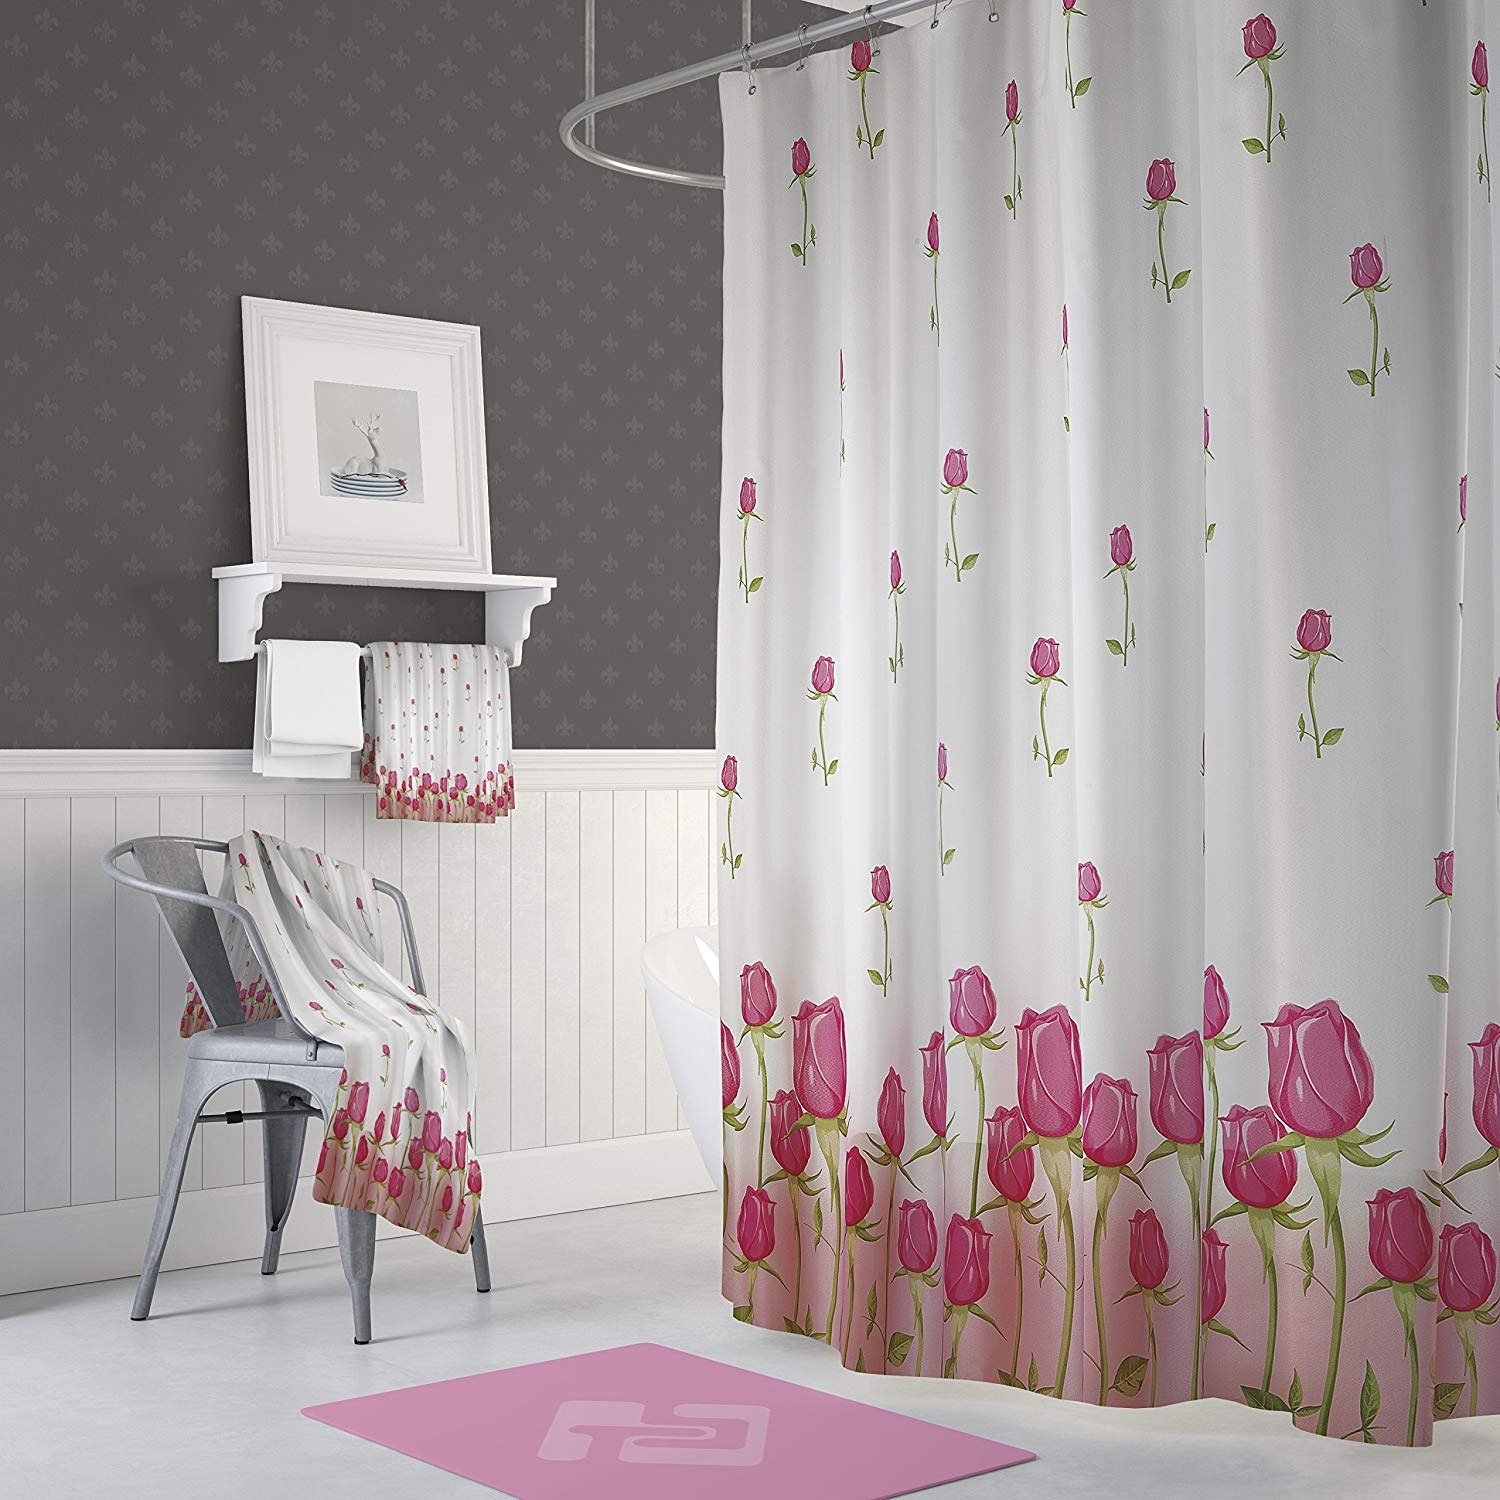 Buy Custom Ombre Pink White Shower Curtain 66 X 72